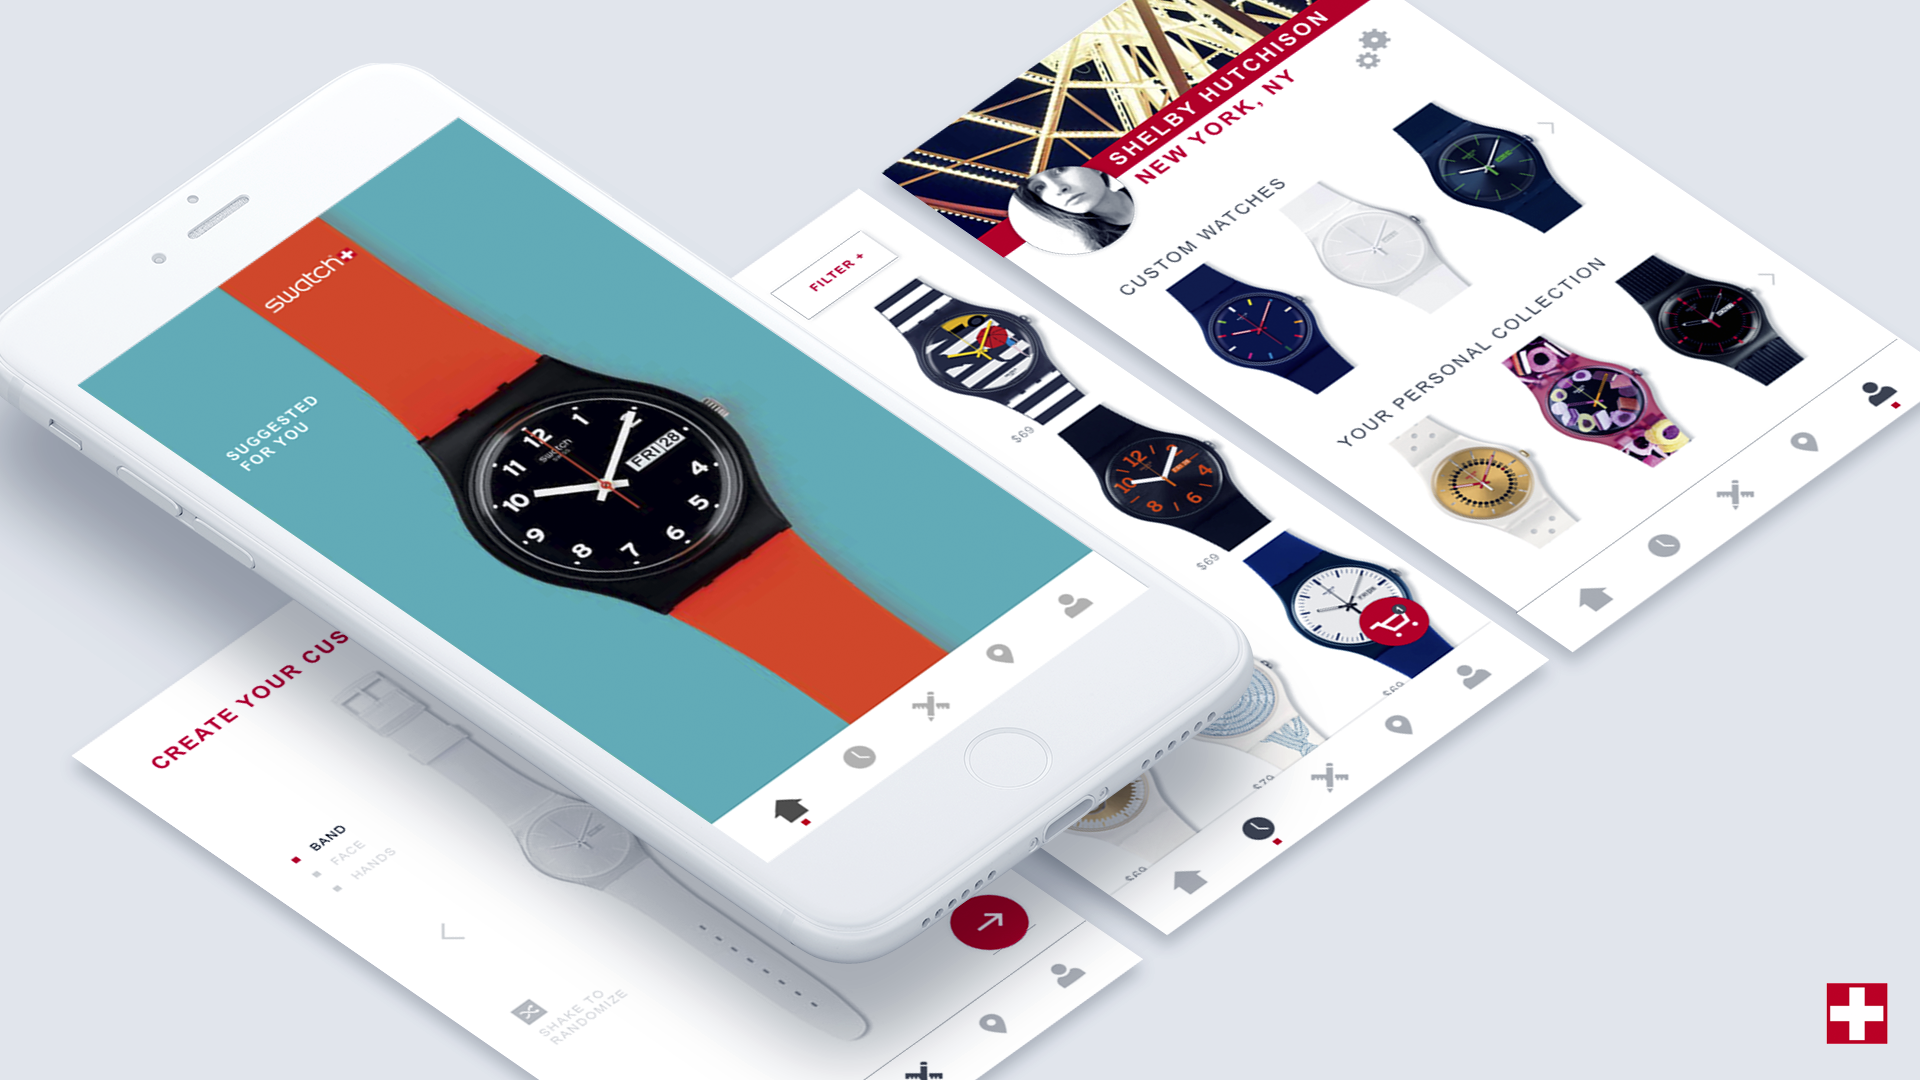 Swatch App Redesign